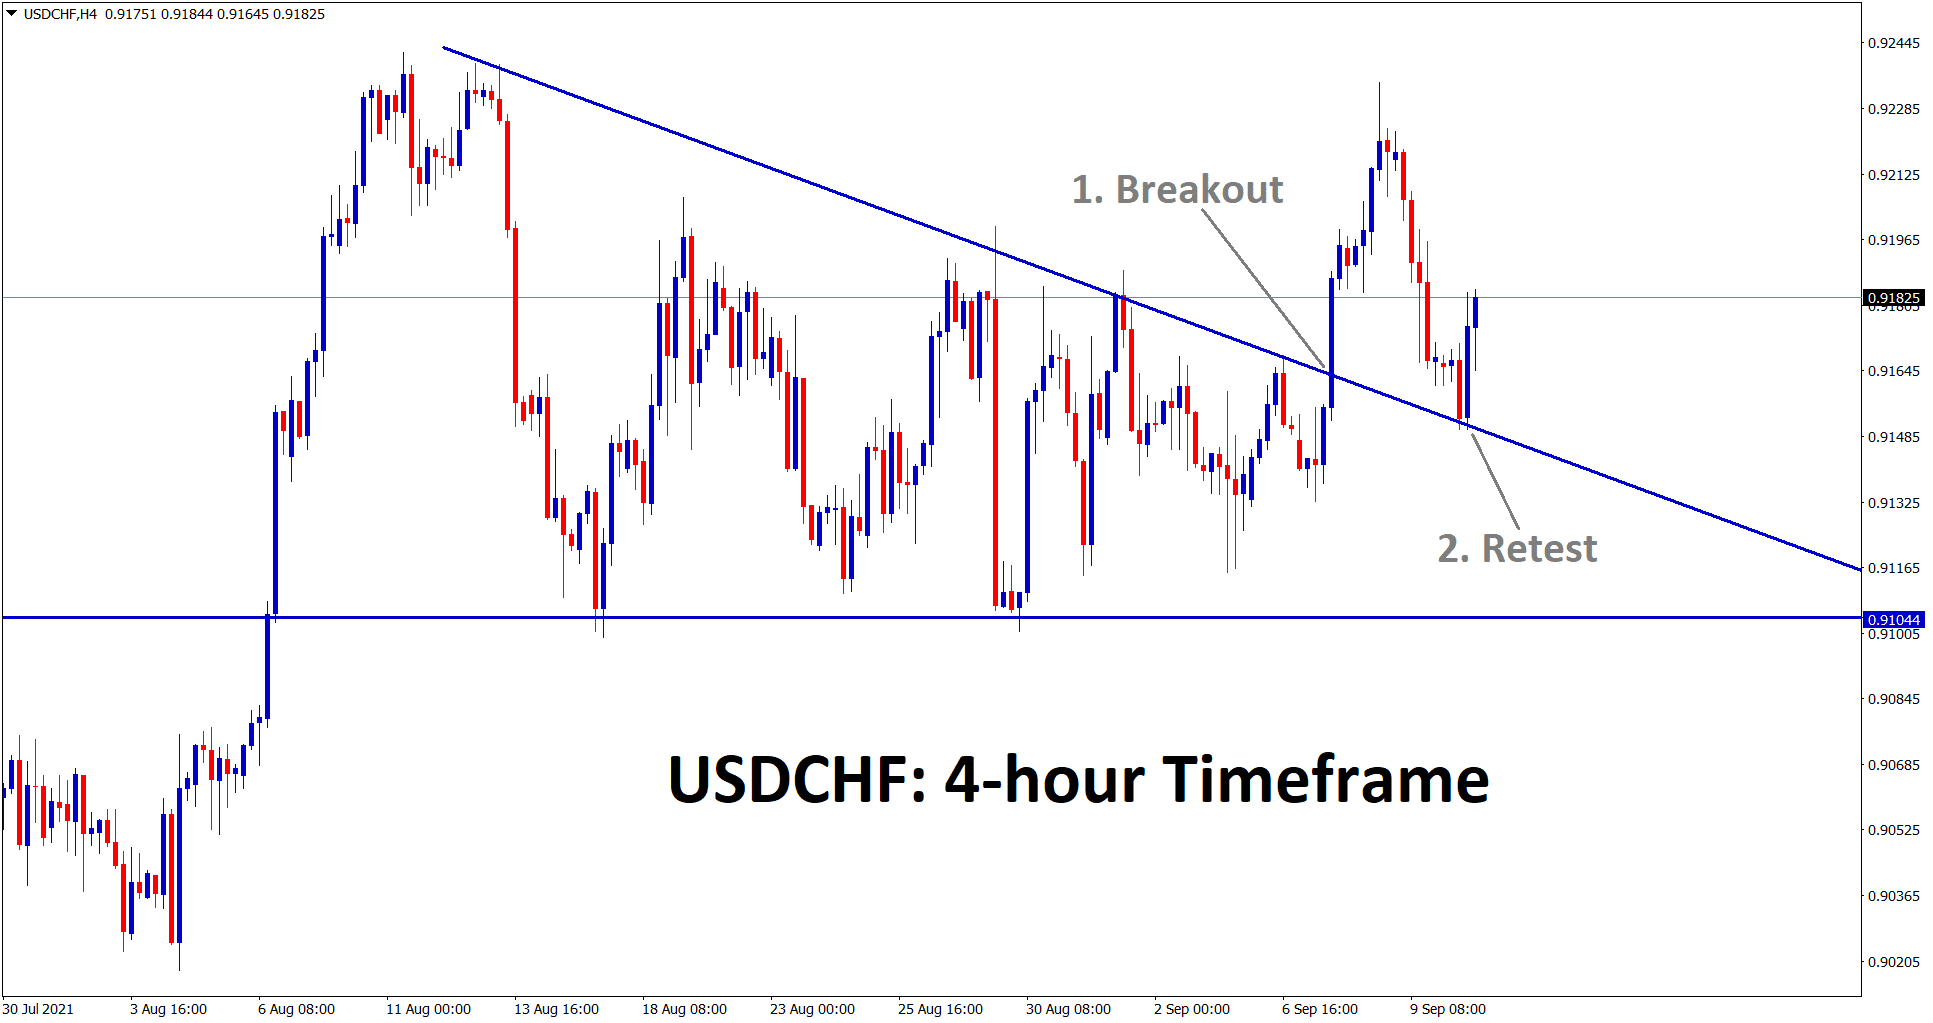 USDCHF has retested and rebounding from the broken descending triangle